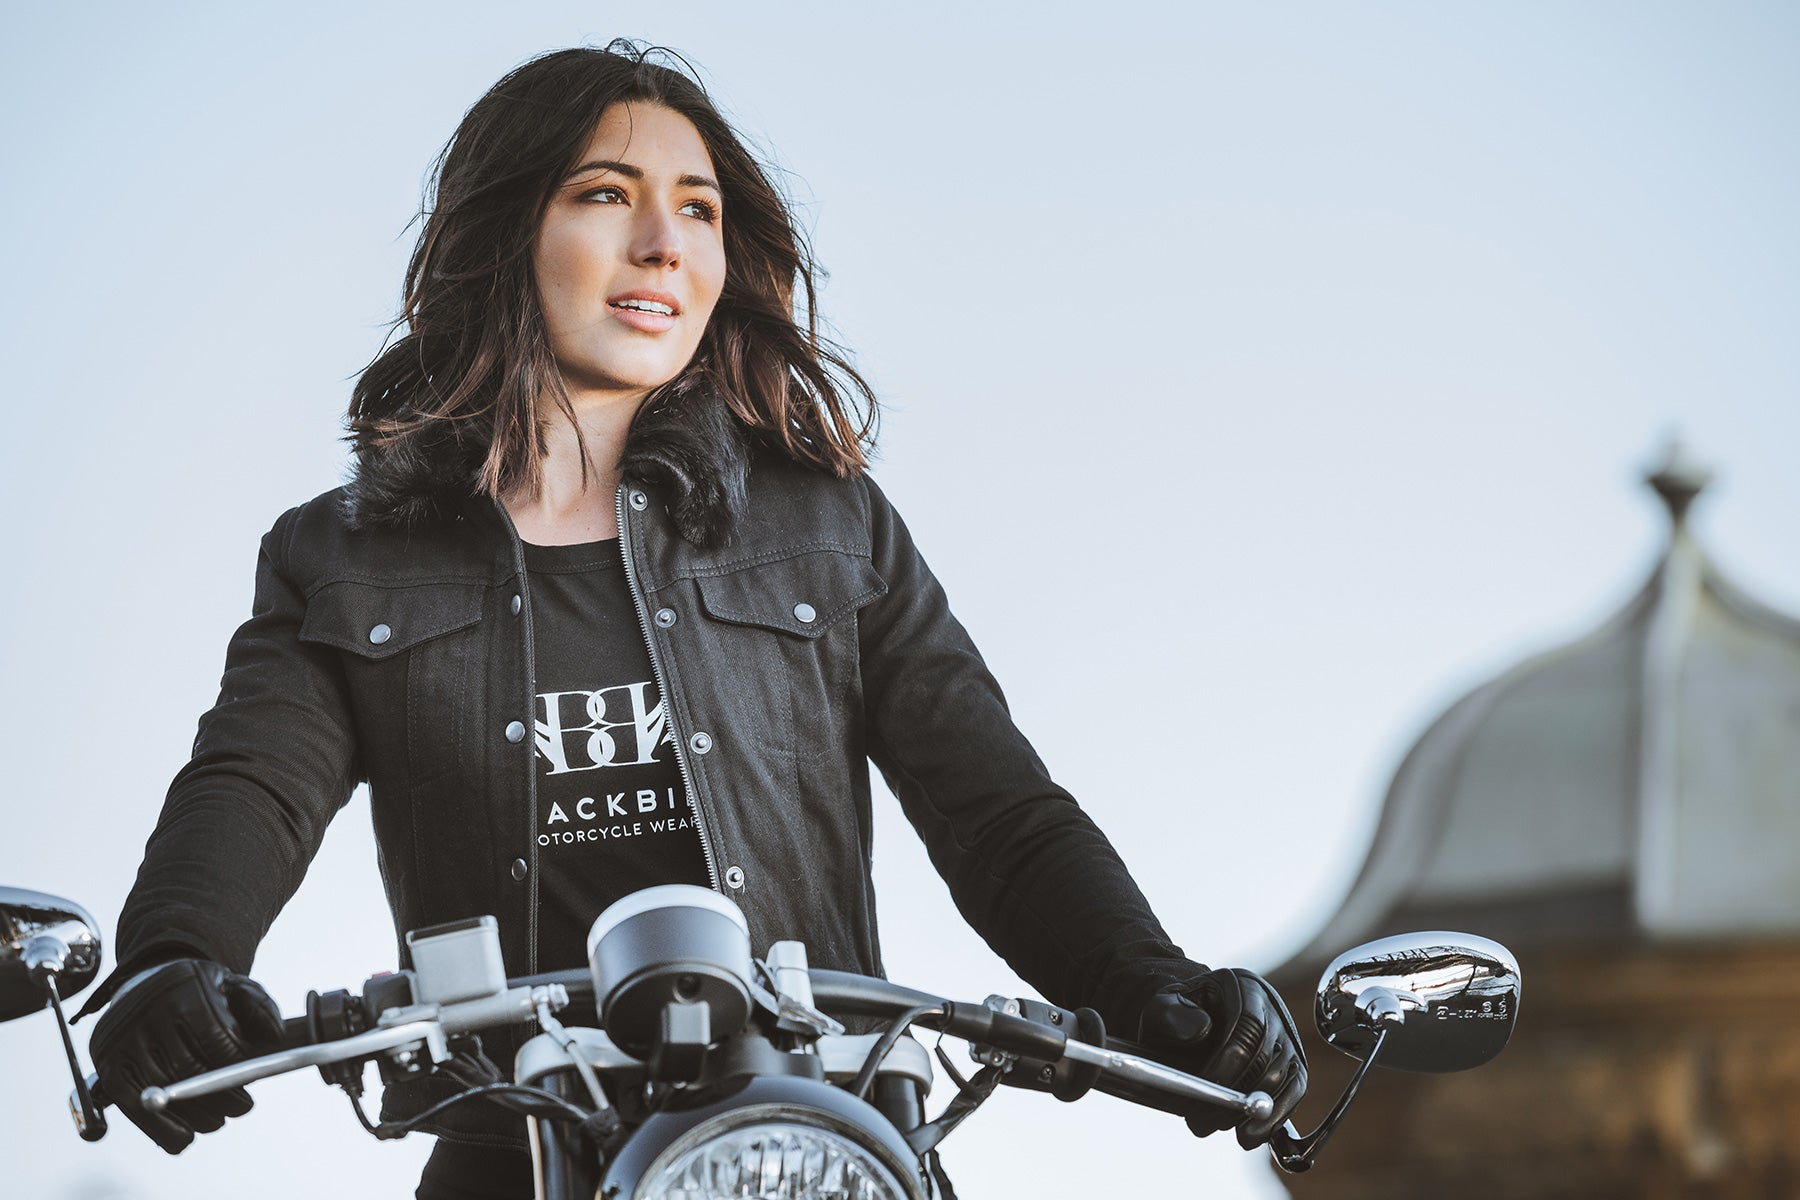 blackbird women's motorcycle wear available at moto femmes online australia